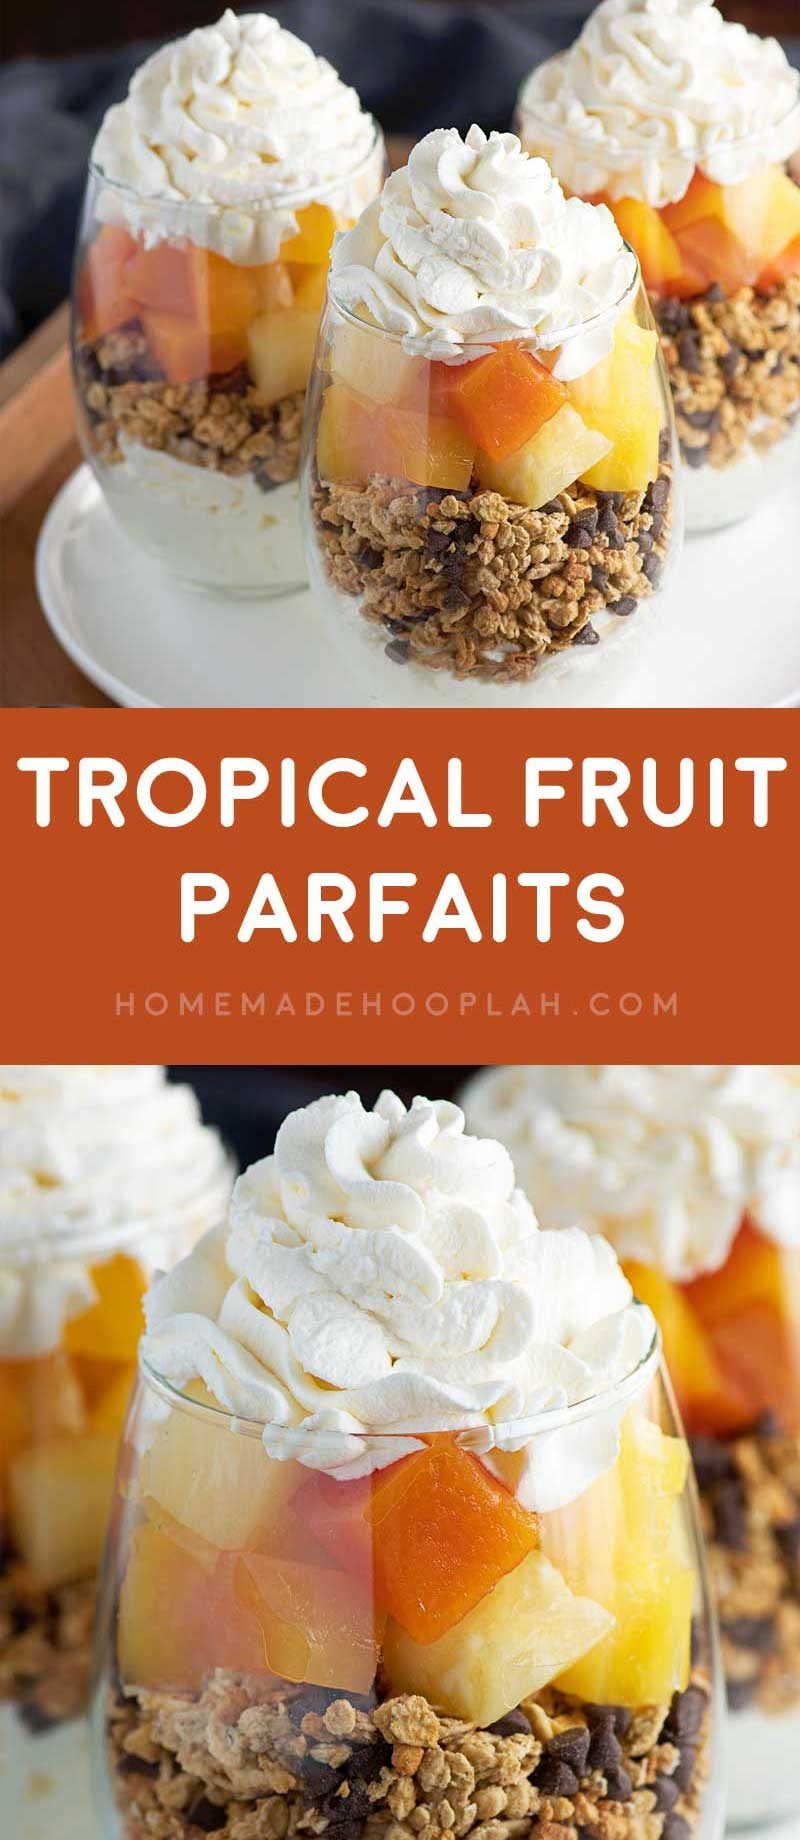 Tropical Fruit Parfaits! Decadent parfaits made with homemade whipped cream, granola, mini chocolate chips, and a tropical blend of fruit that comes together in just 15 minutes! | HomemadeHooplah.com FruitOnDemand AD @DoleSunshine